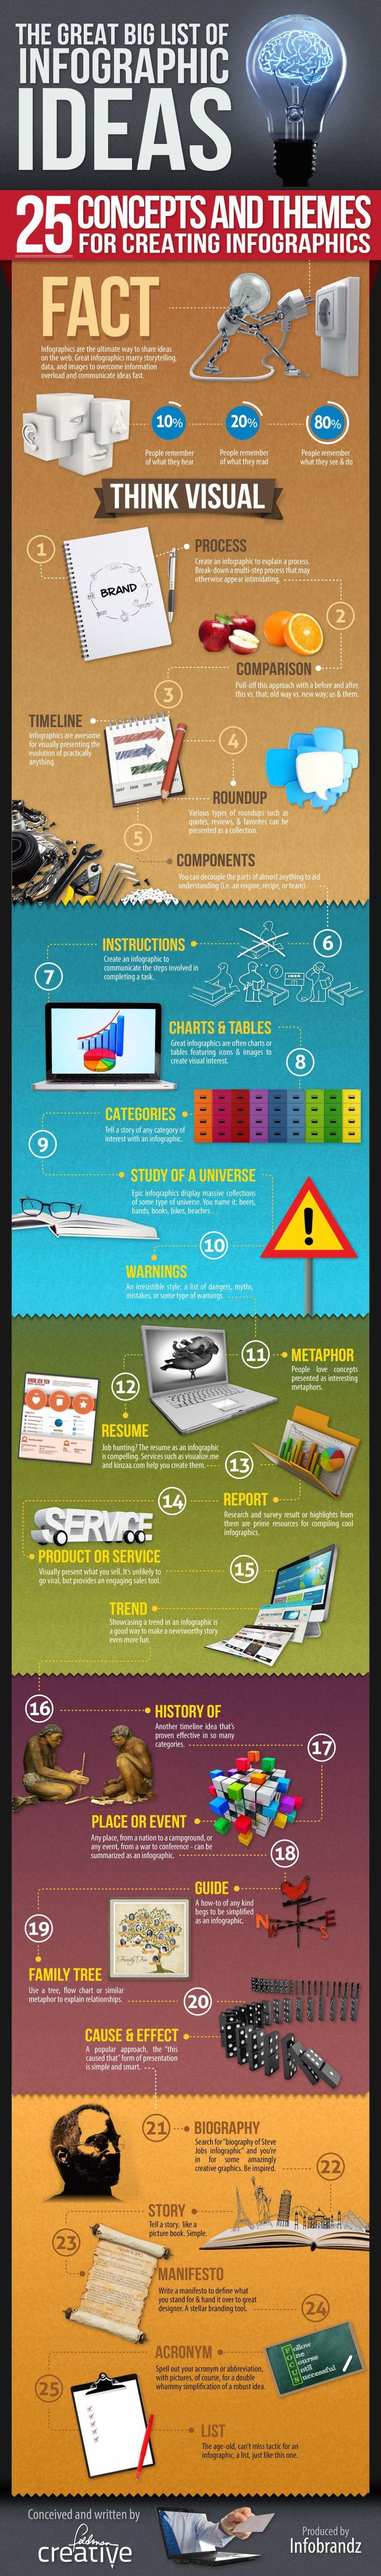 119 best Finanzas images on Pinterest | Learning, Knowledge and ...